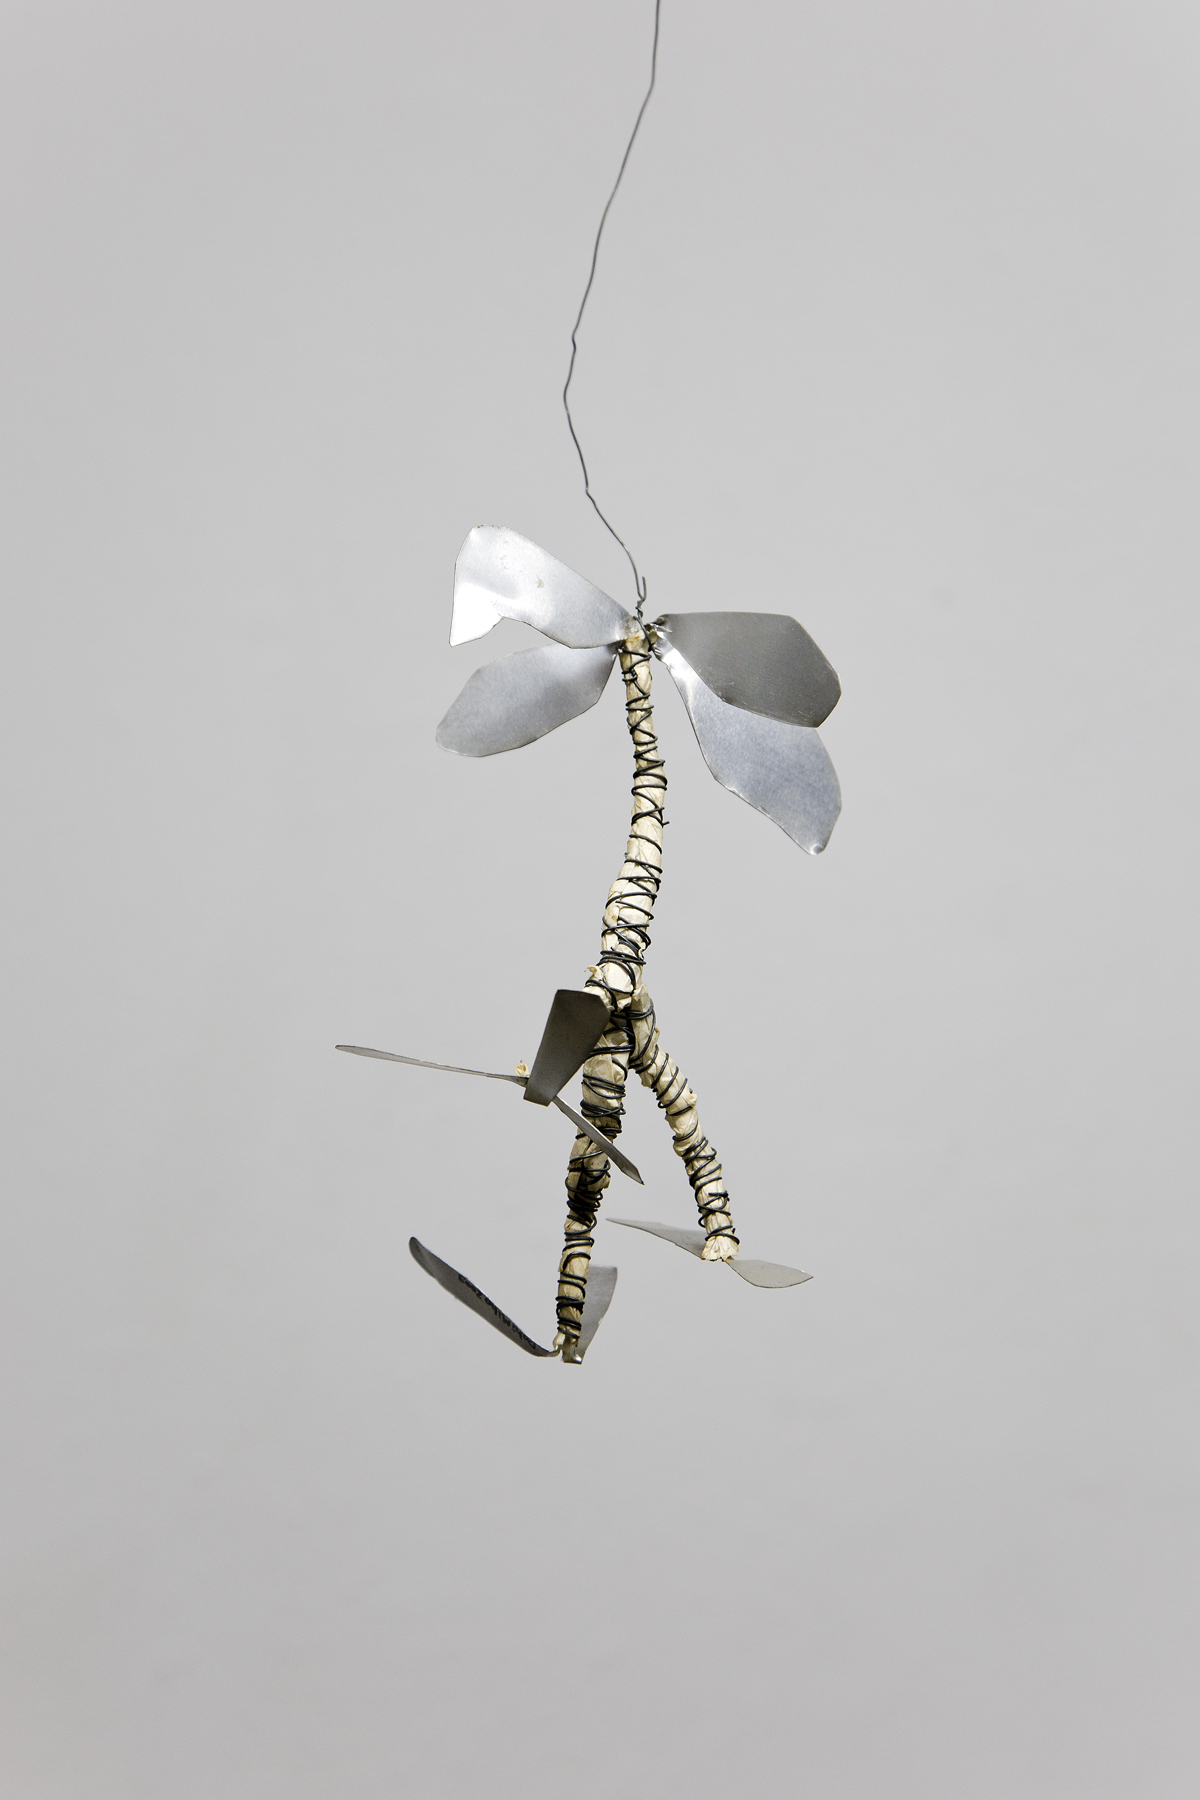 Miho Dohi, Hanged Creatures, 2004.  Aluminum, wire, paper, h16 x w11 x d7 cm